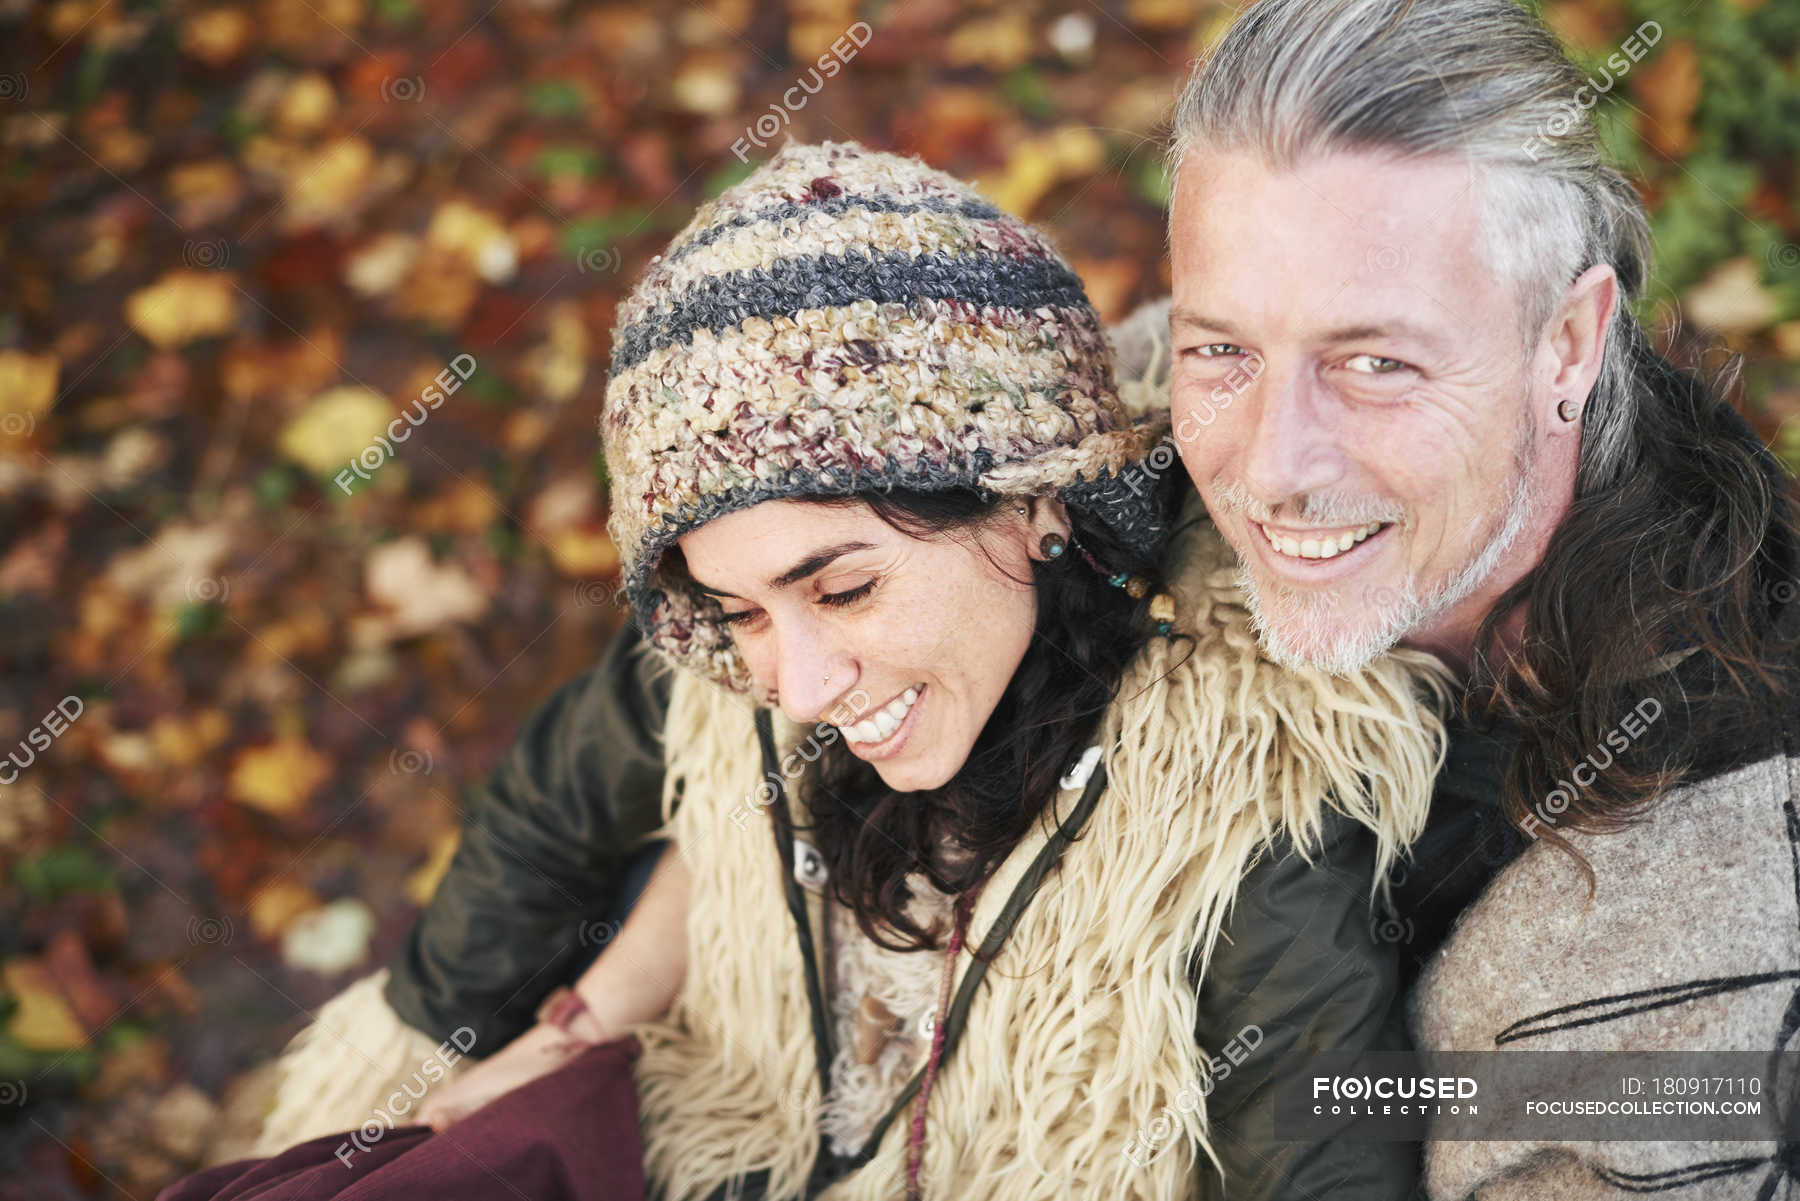 high view mature singles Meet your next date or soulmate 😍 chat, flirt & match online with over 20 million like-minded singles 100% free dating 30 second signup mingle2.